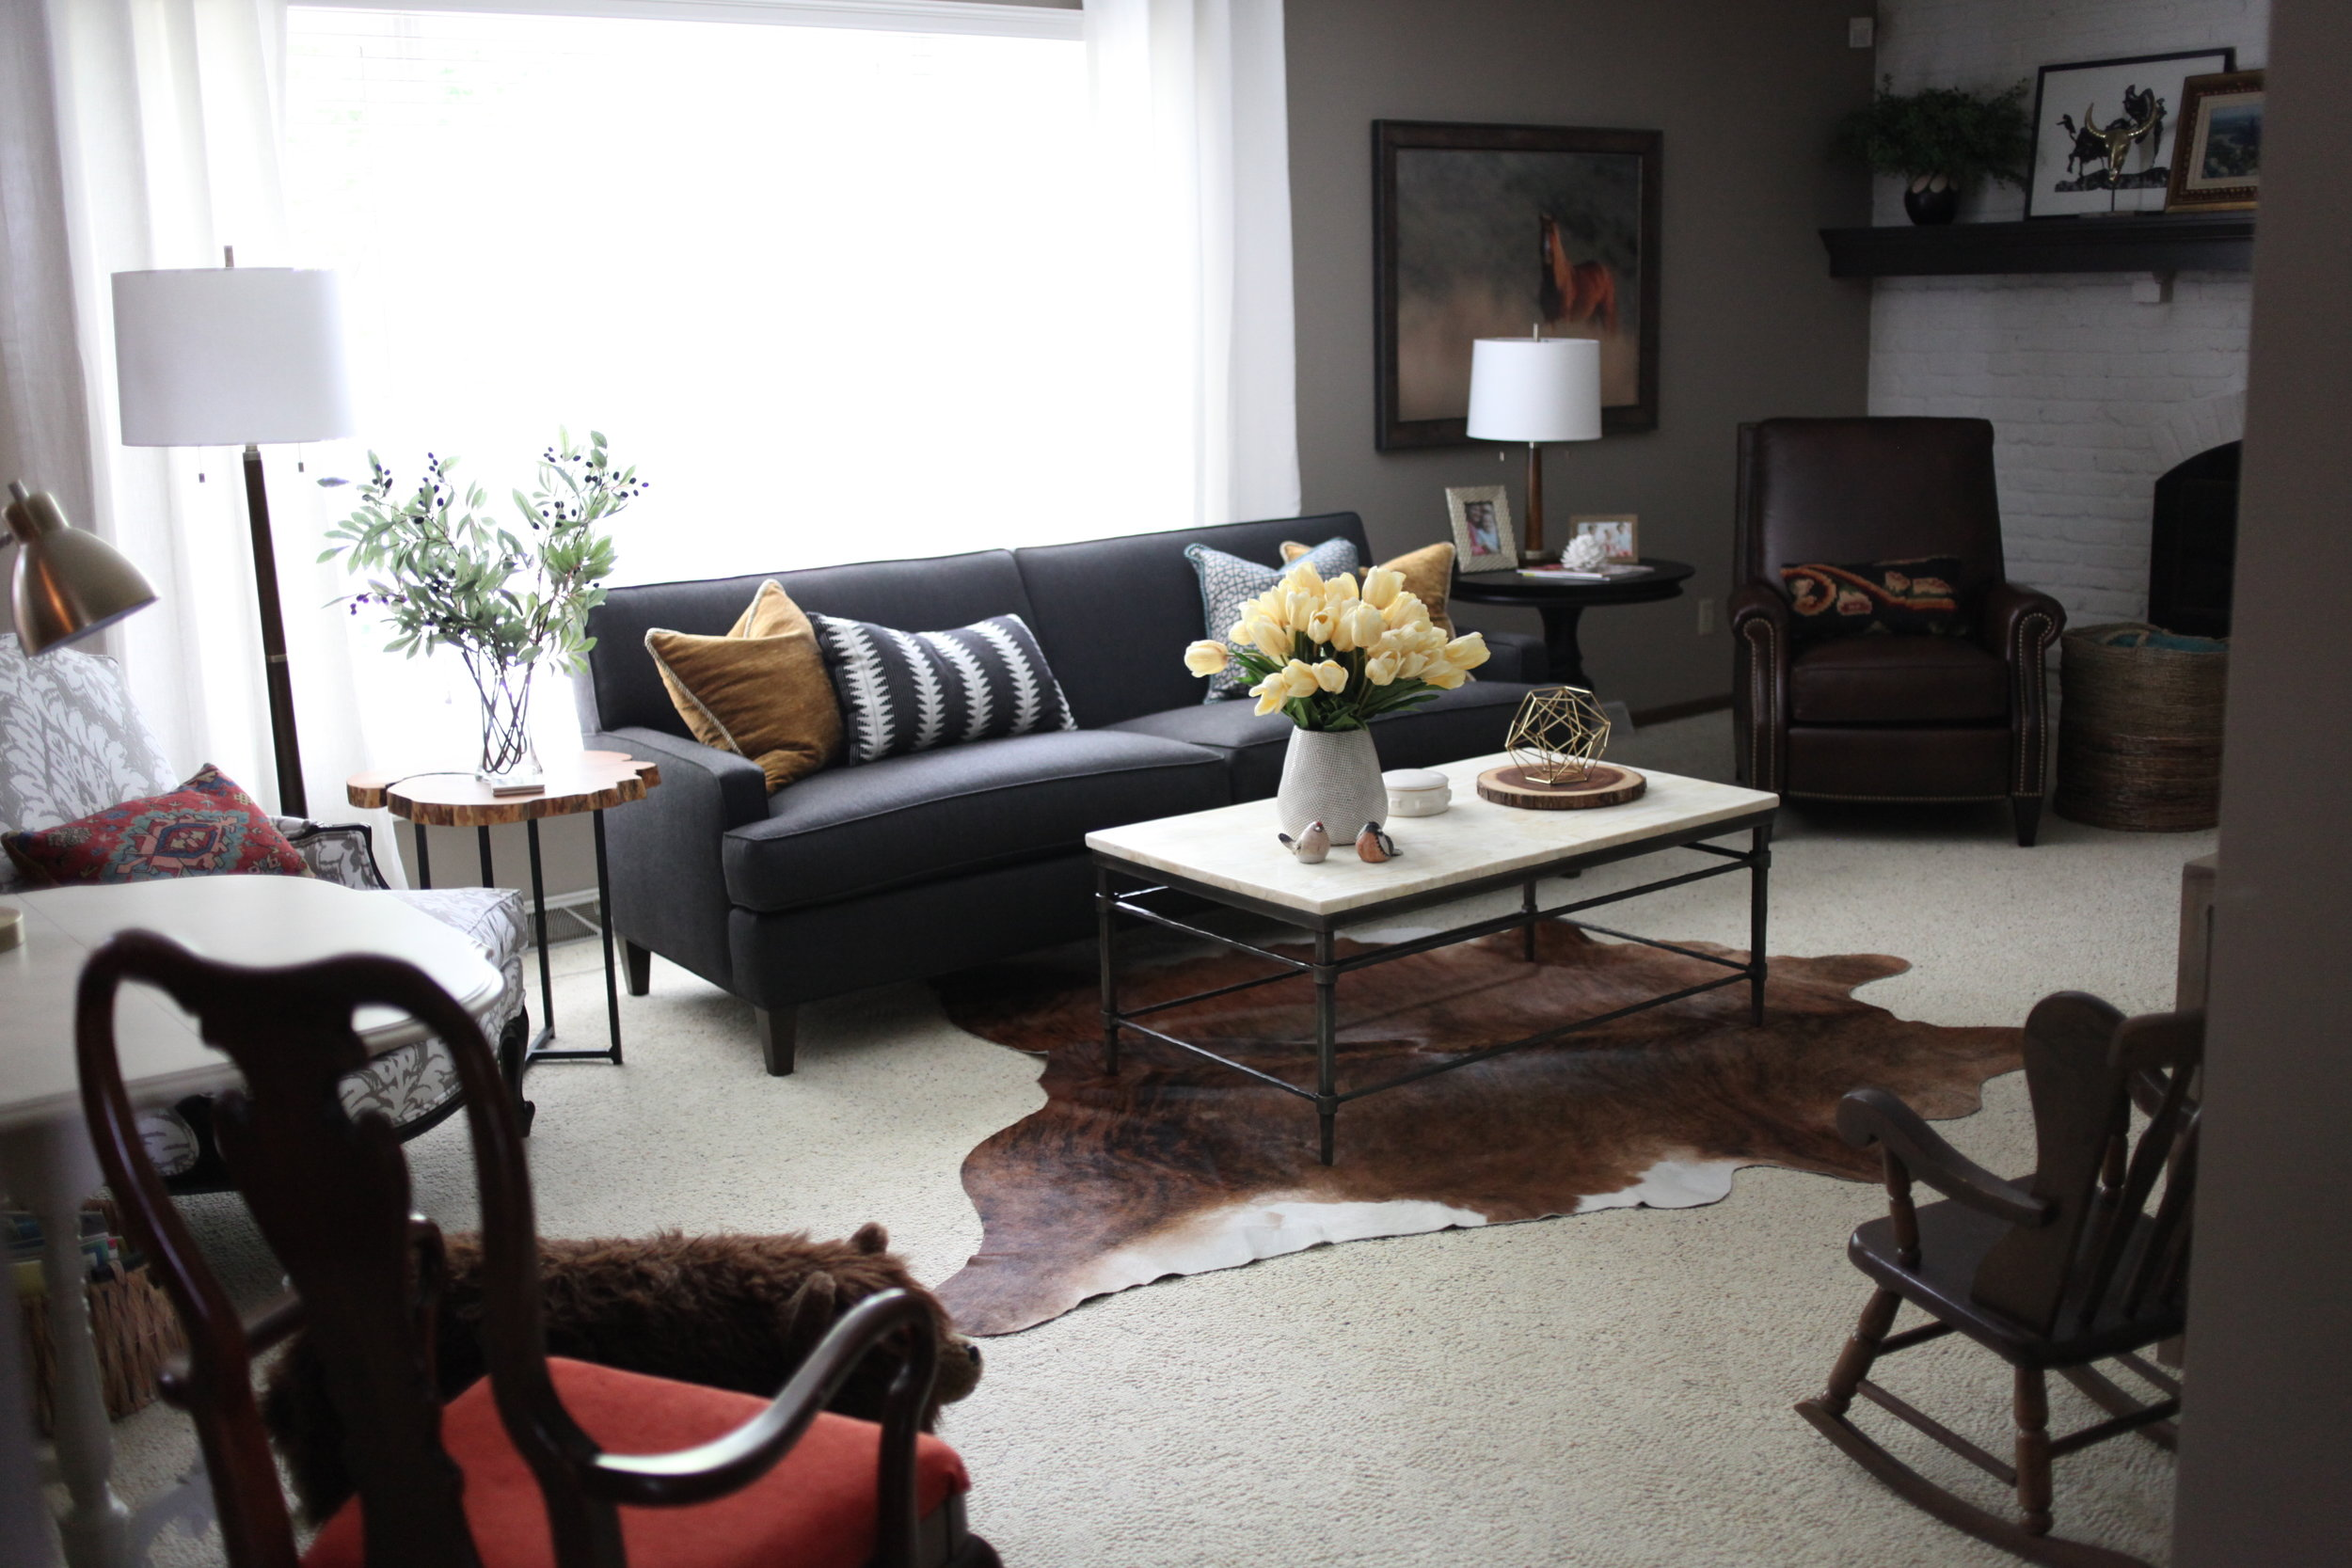 Modern Southwestern living room with grey couch, white painted fireplace, cow hide rug and black and white pillow